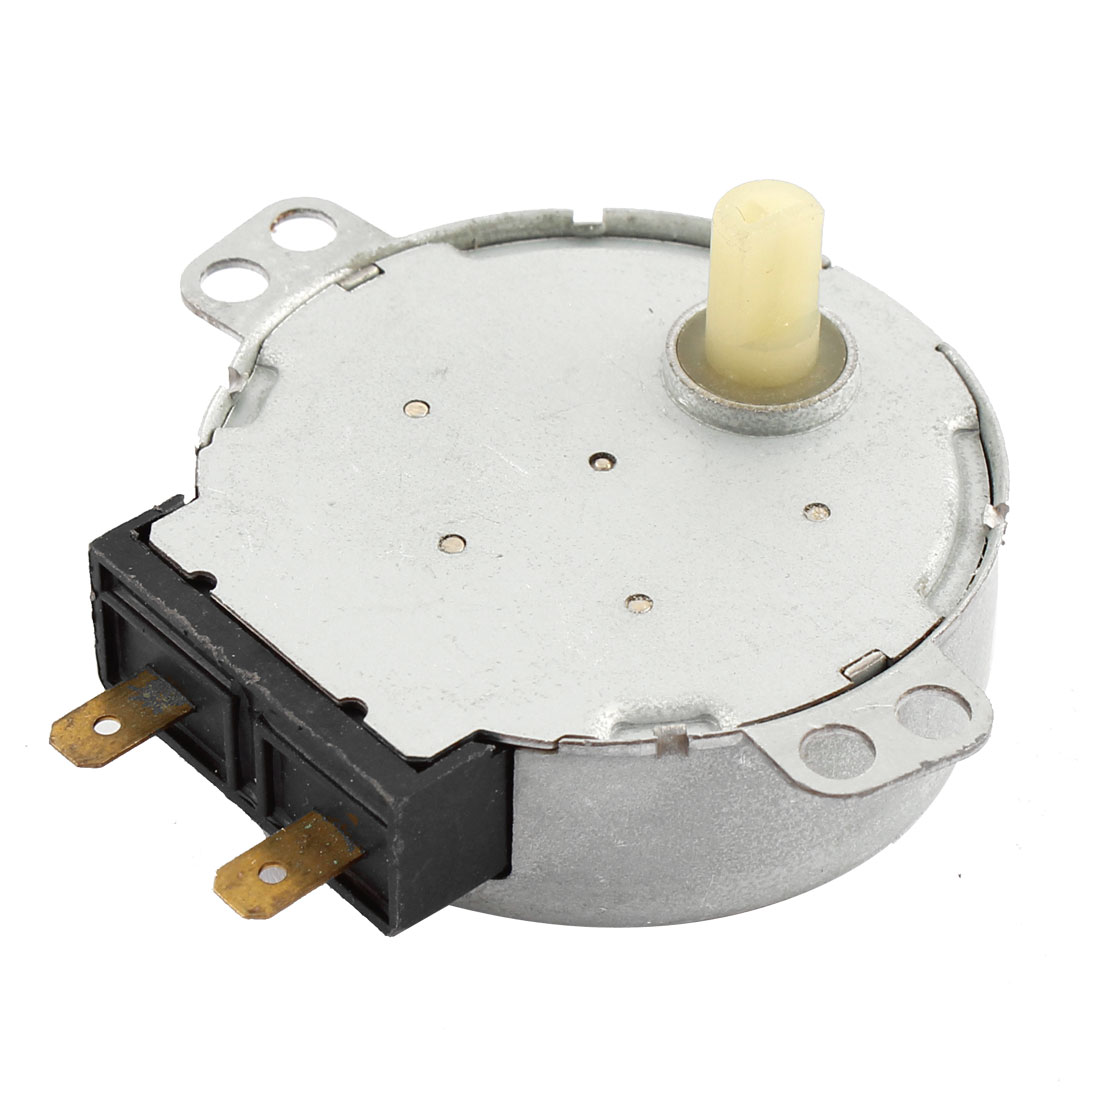 3.5/4W 4/5RPM AC 30V 50/60Hz Synchronous Motor for Microwave Oven